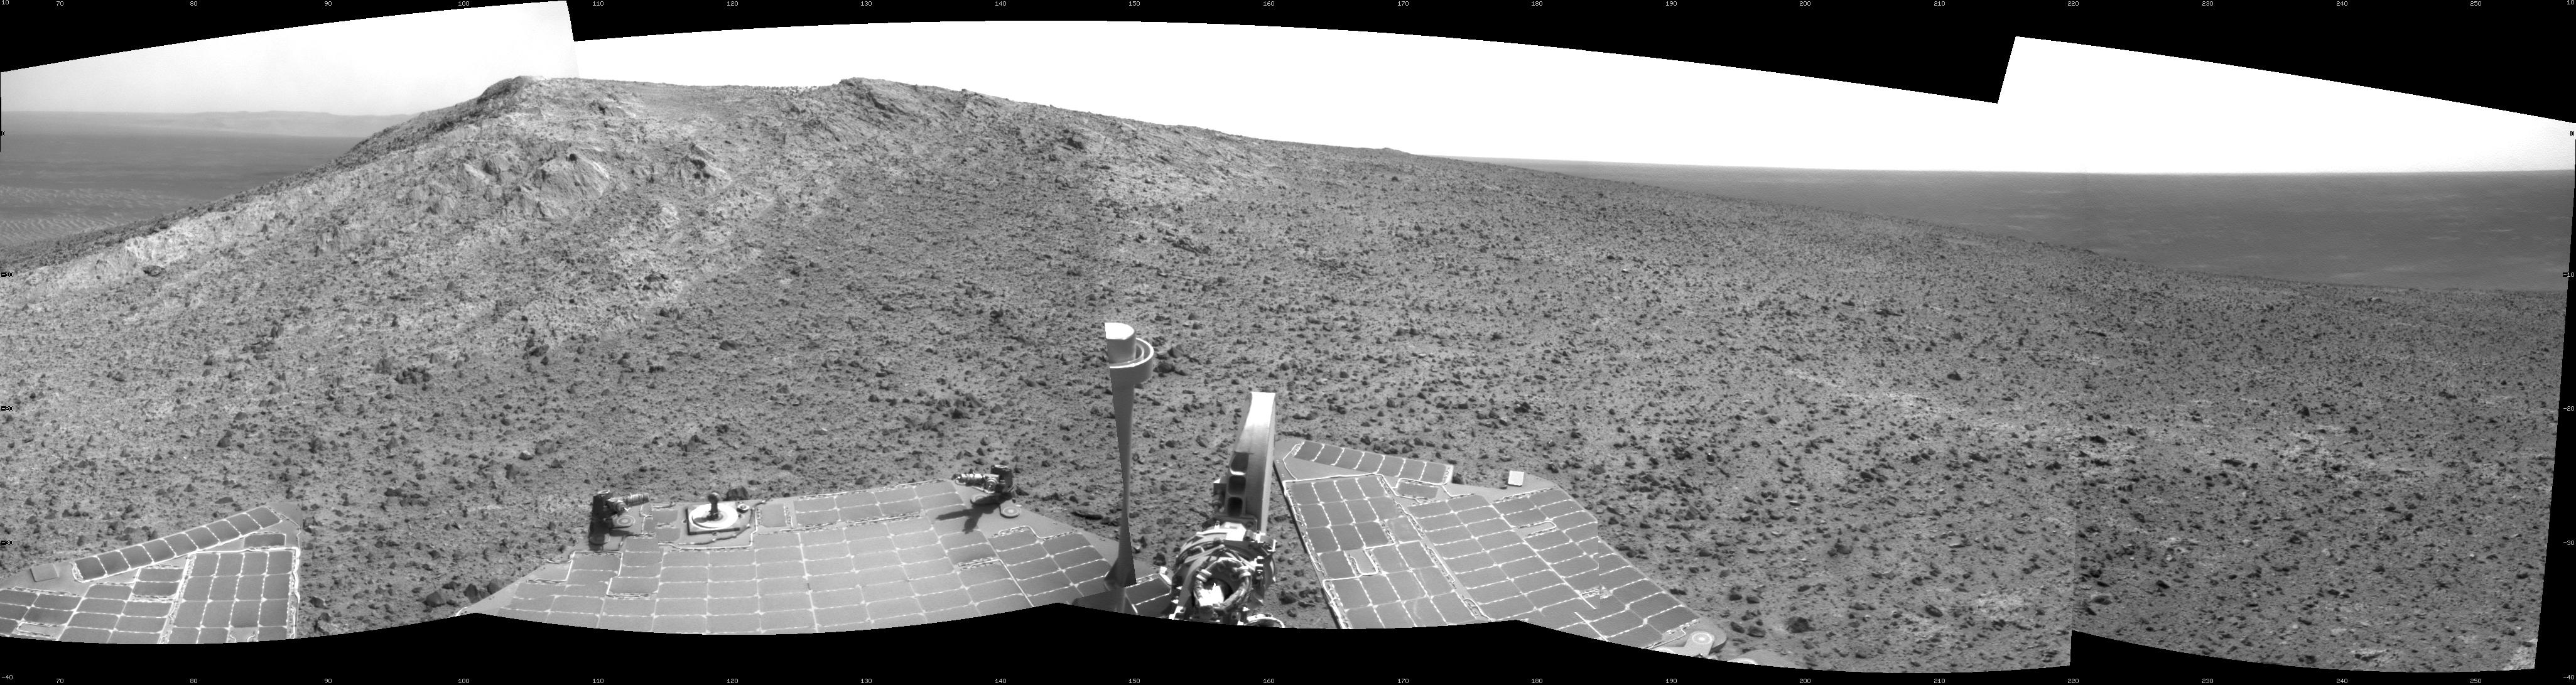 footage of mars landing today - photo #48